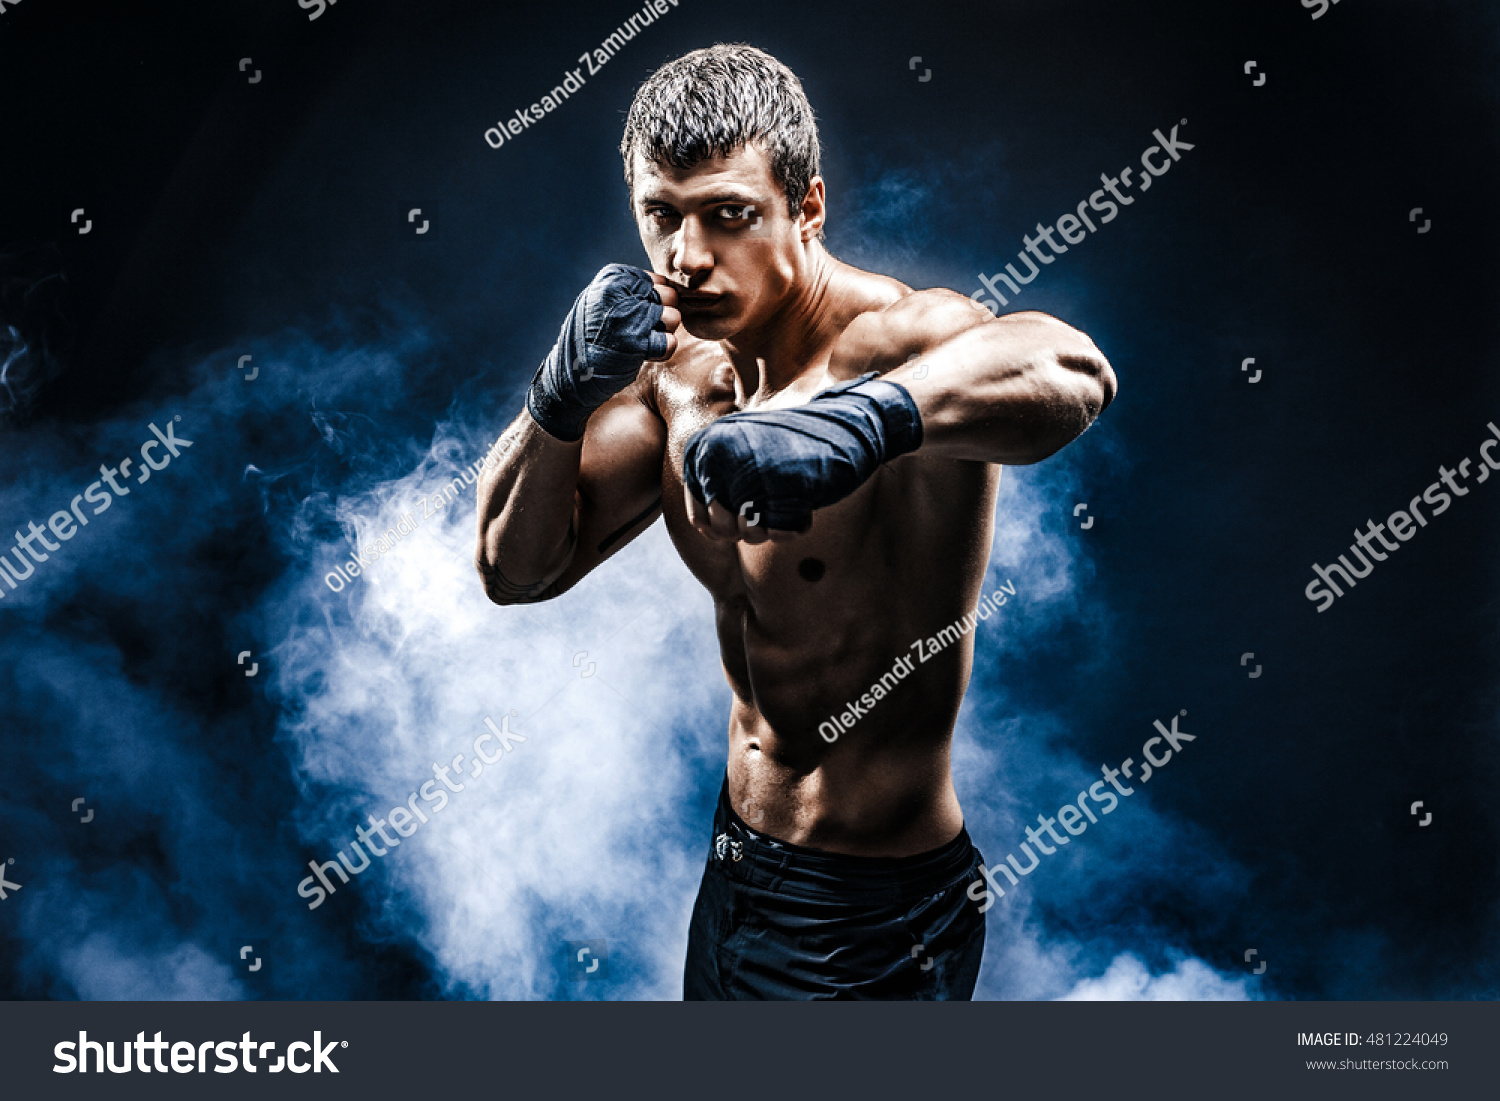 Muscular kick-box or muay thai fighter punching in smoke